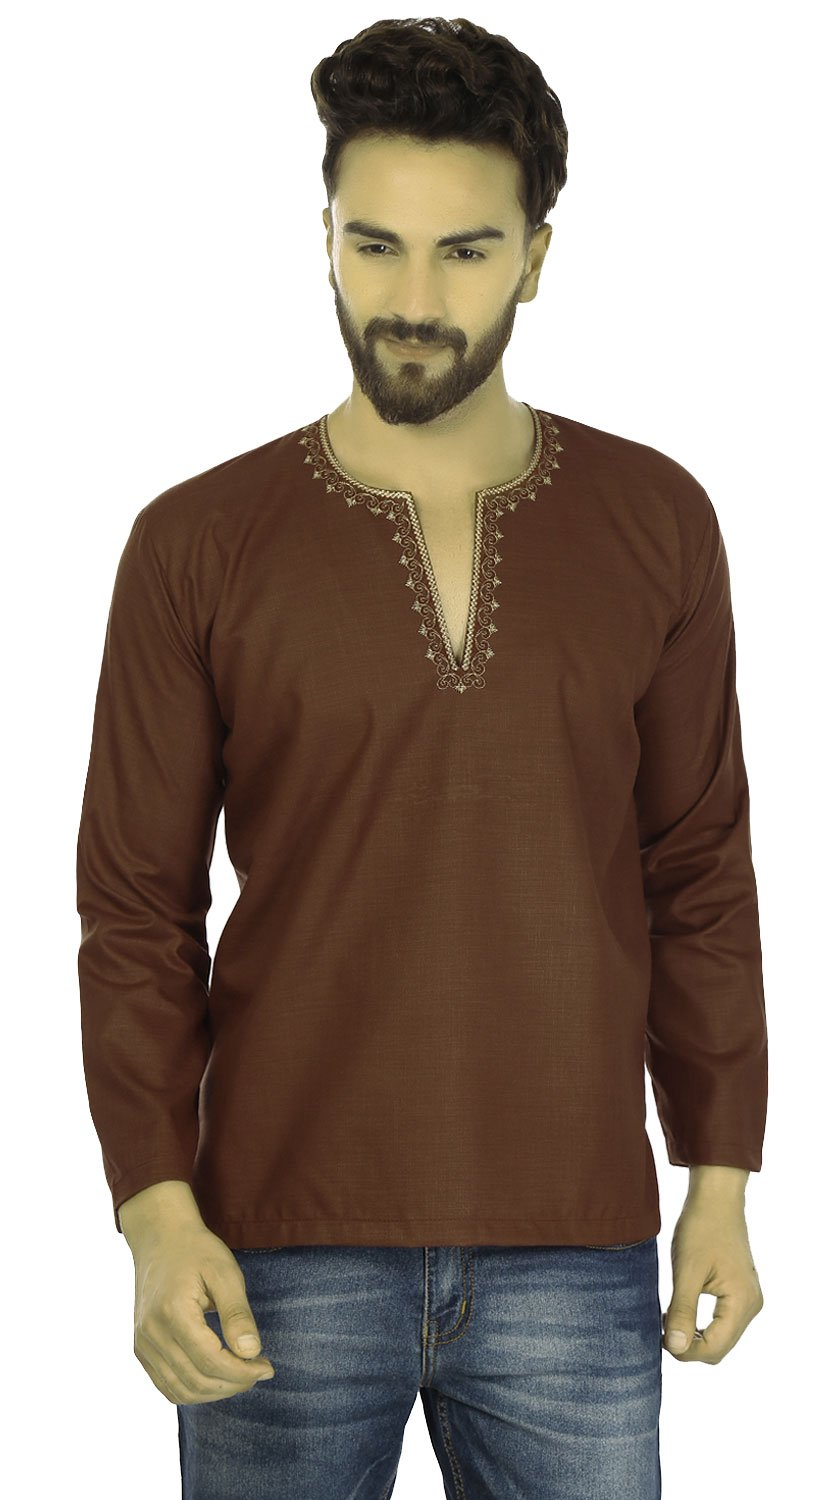 Maple Clothing Embroidered Cotton Dress Mens Short Kurta Shirt India Fashion (Chocolate, M)